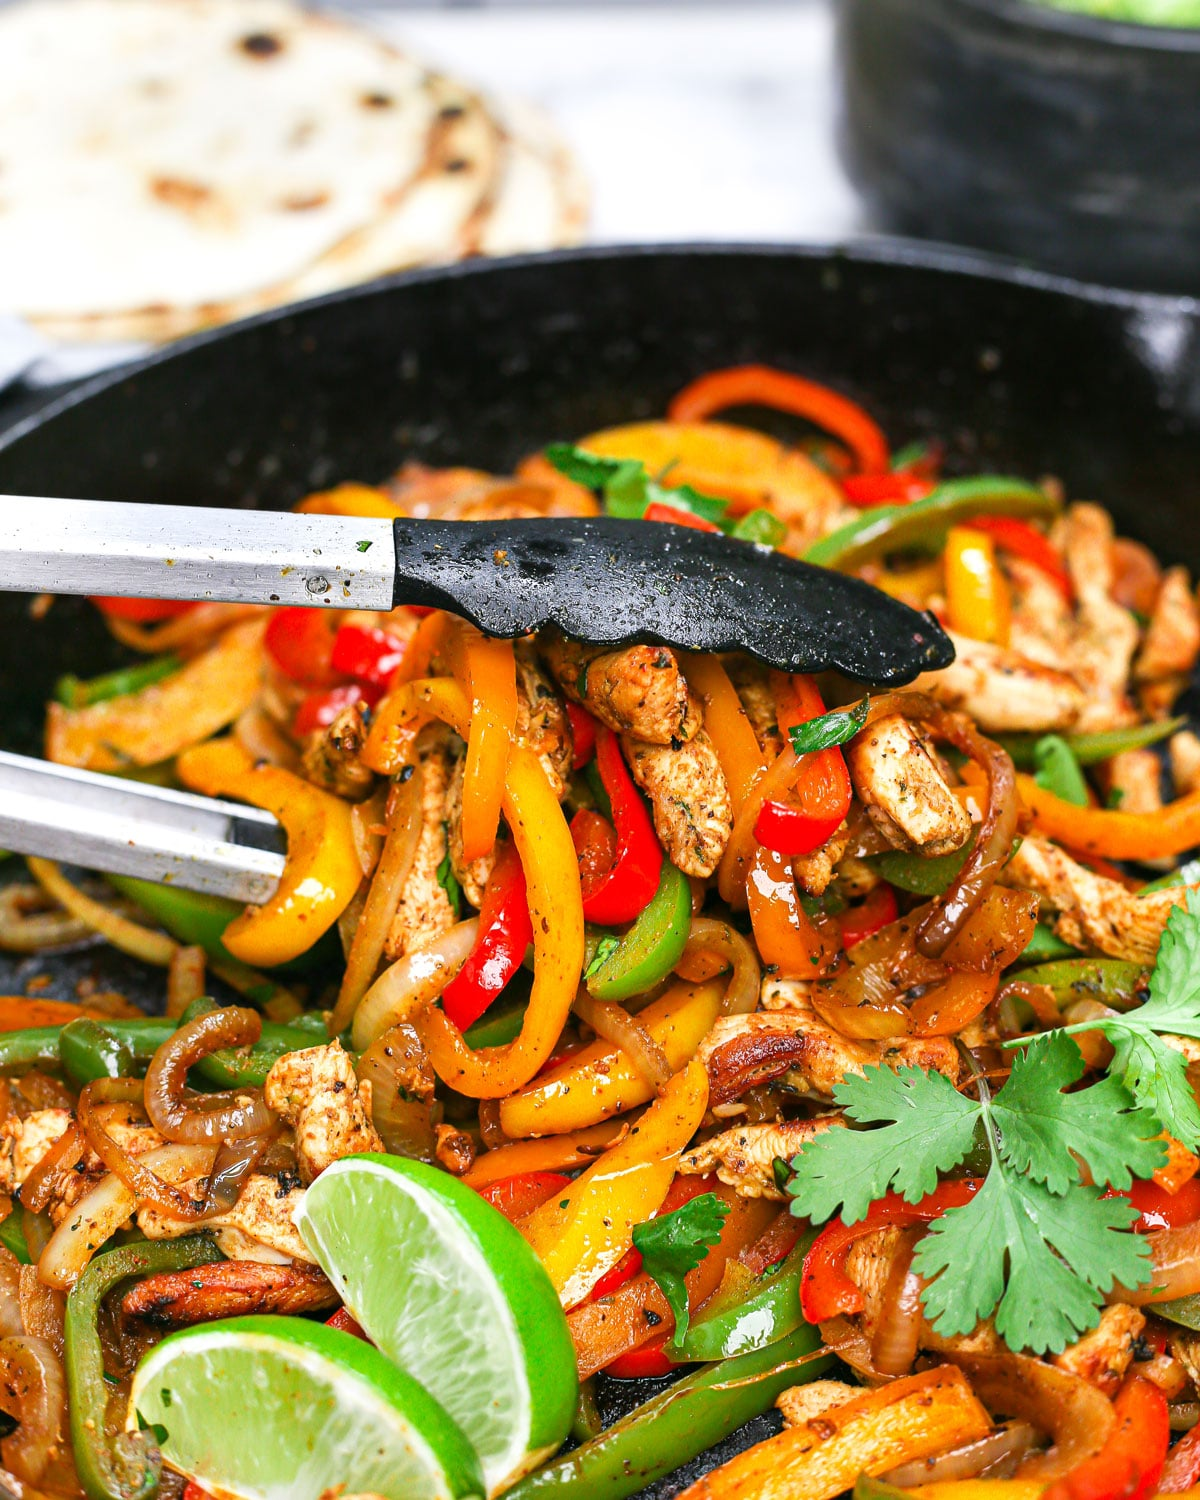 tongs picking up chicken fajtas from a skillet